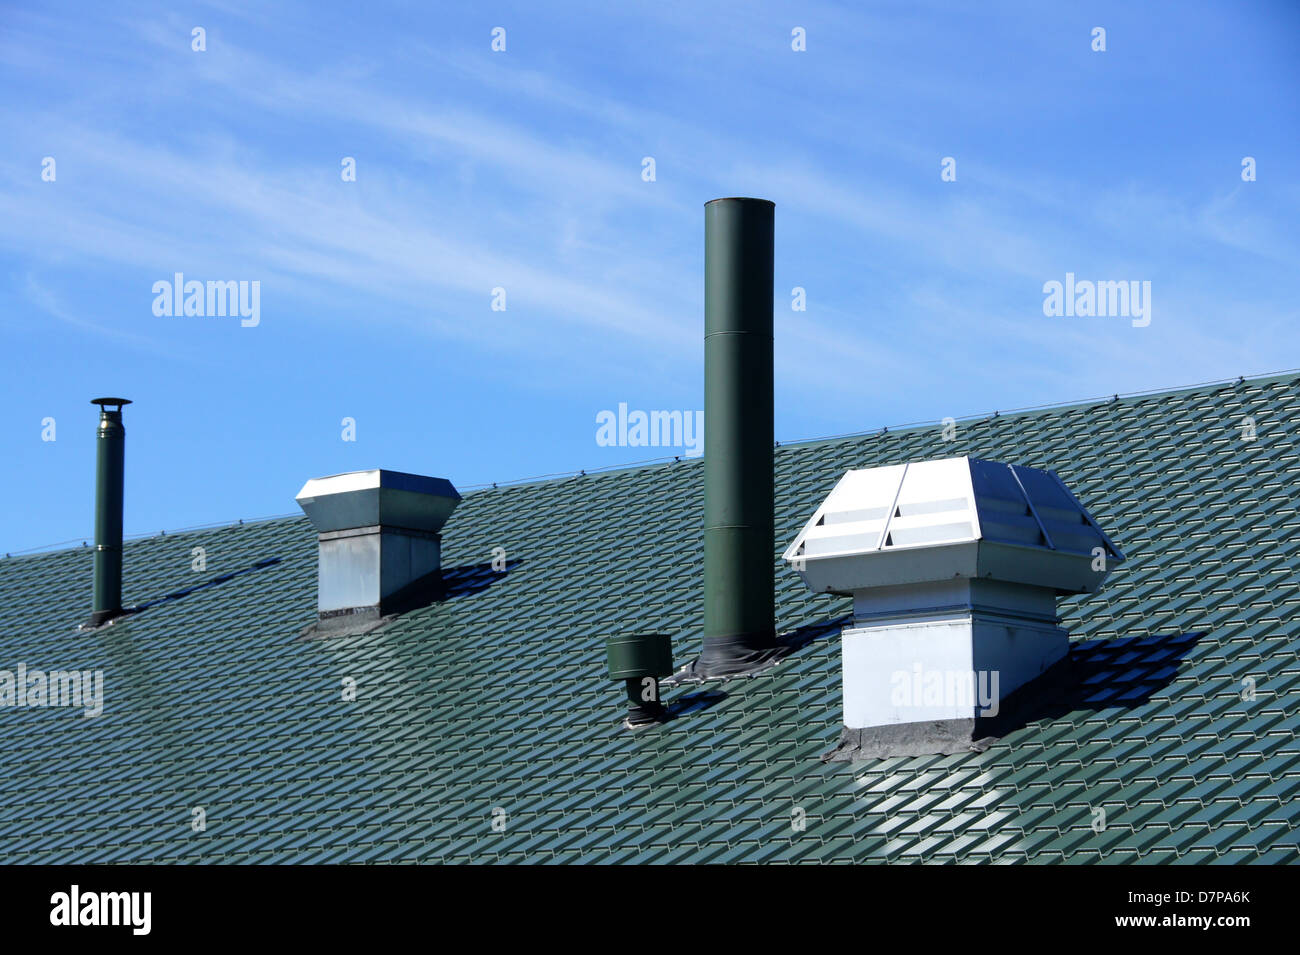 Ventilation Duct Roof Stock Photos & Ventilation Duct Roof Stock ...